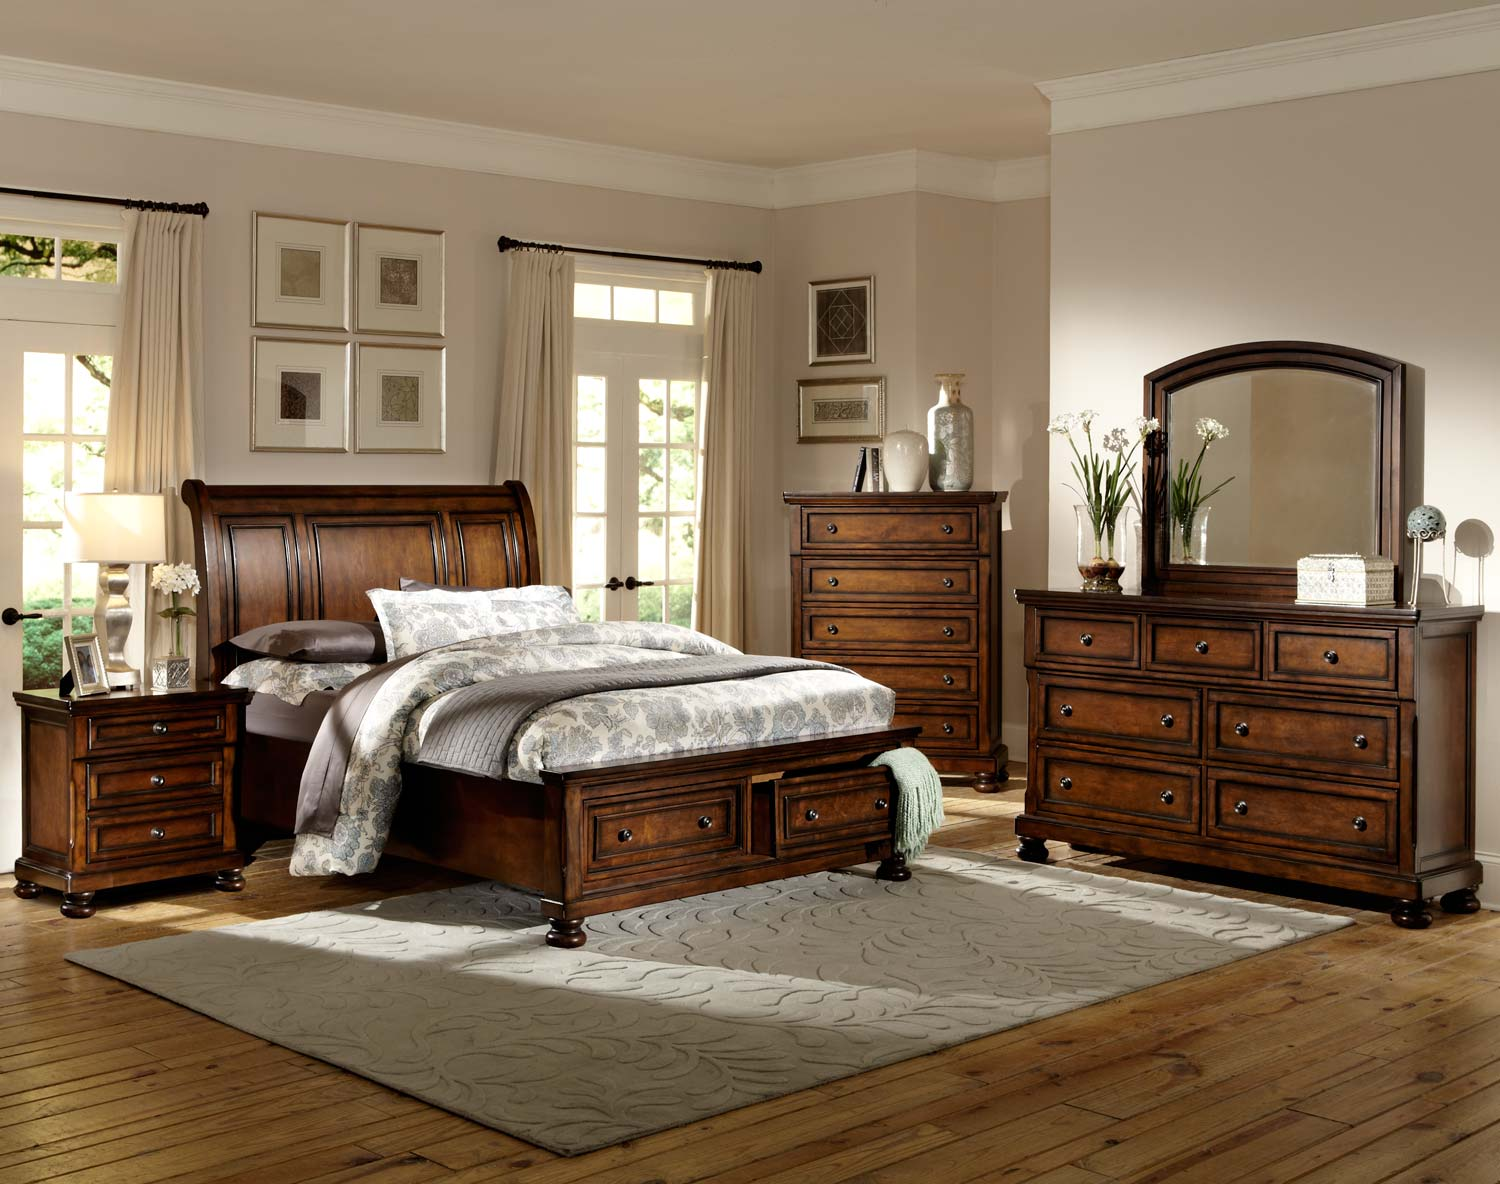 Homelegance Cumberland Platform Bedroom Set Brown Cherry